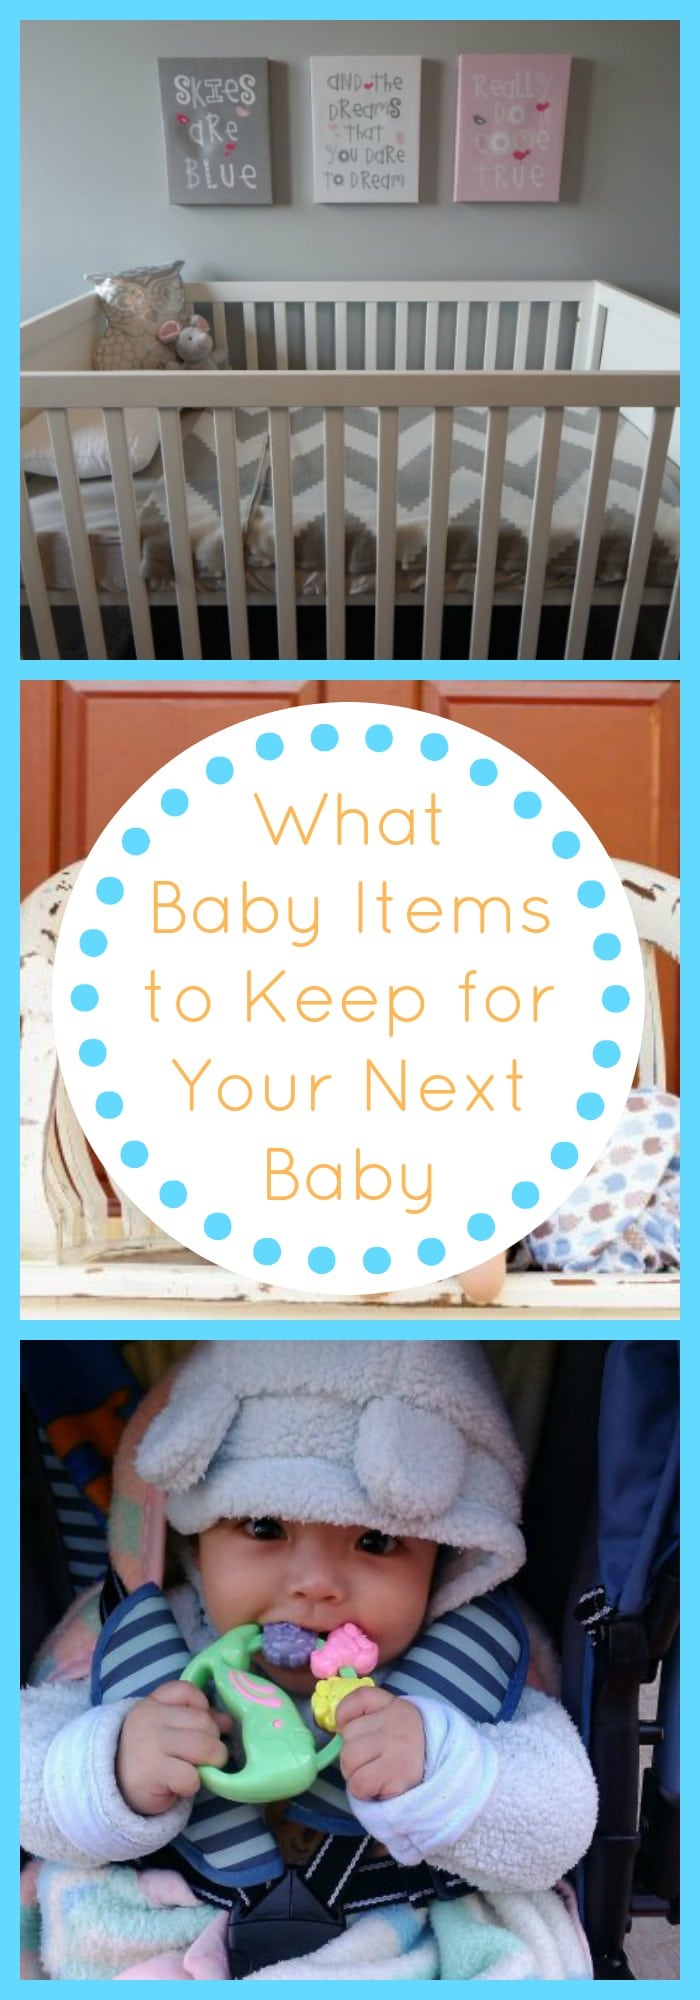 What Baby Items to Keep for Your Next Baby